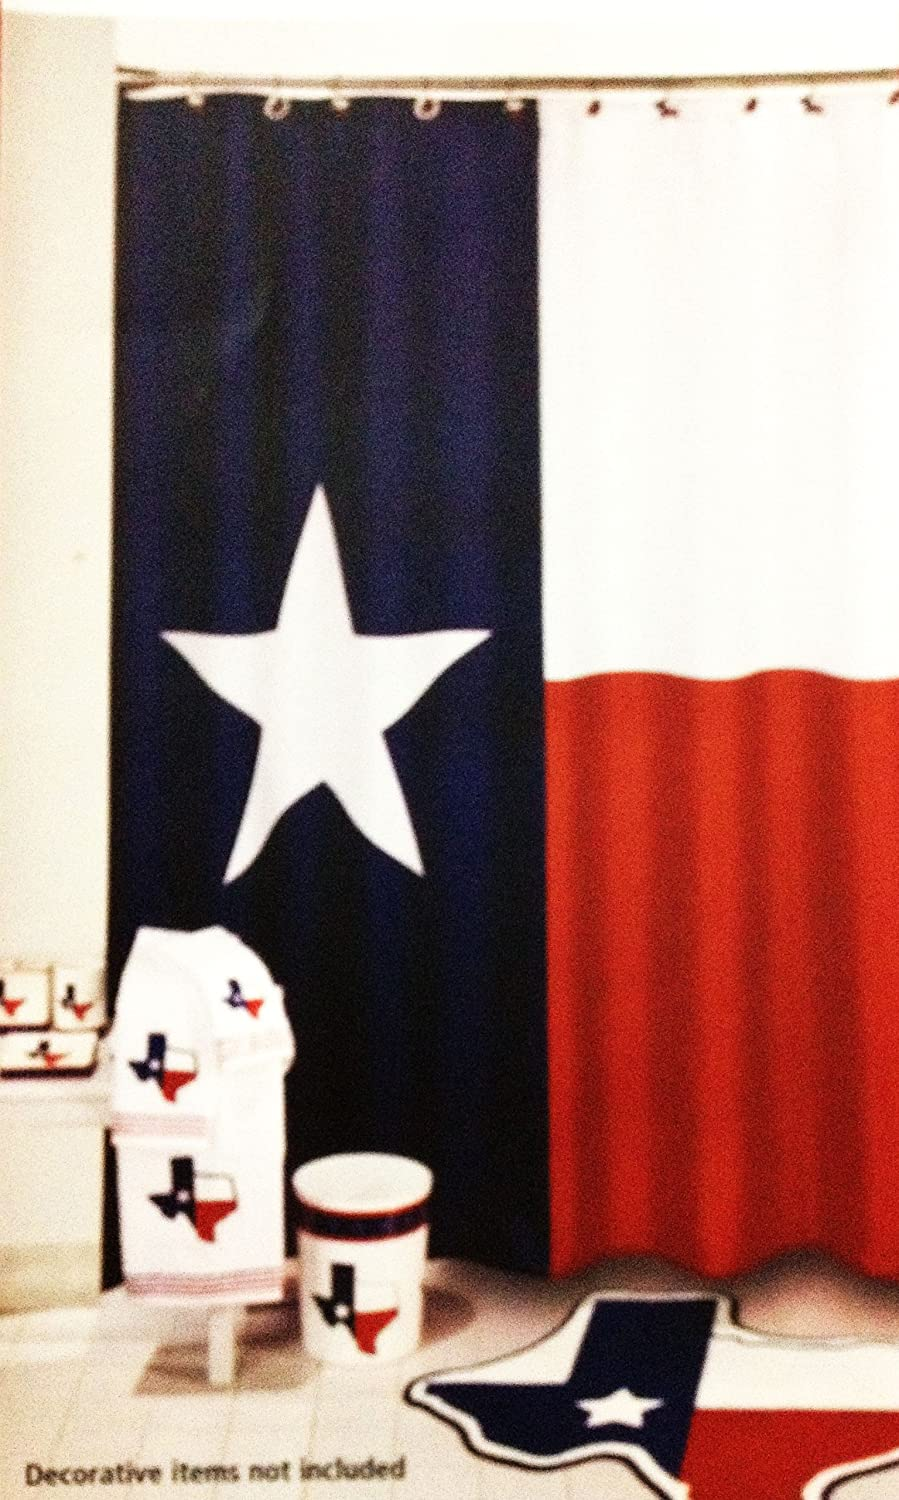 Amazoncom Texas Flag Lone Star Fabric Shower Curtain Home Kitchen - Texas bathroom decor for small bathroom ideas